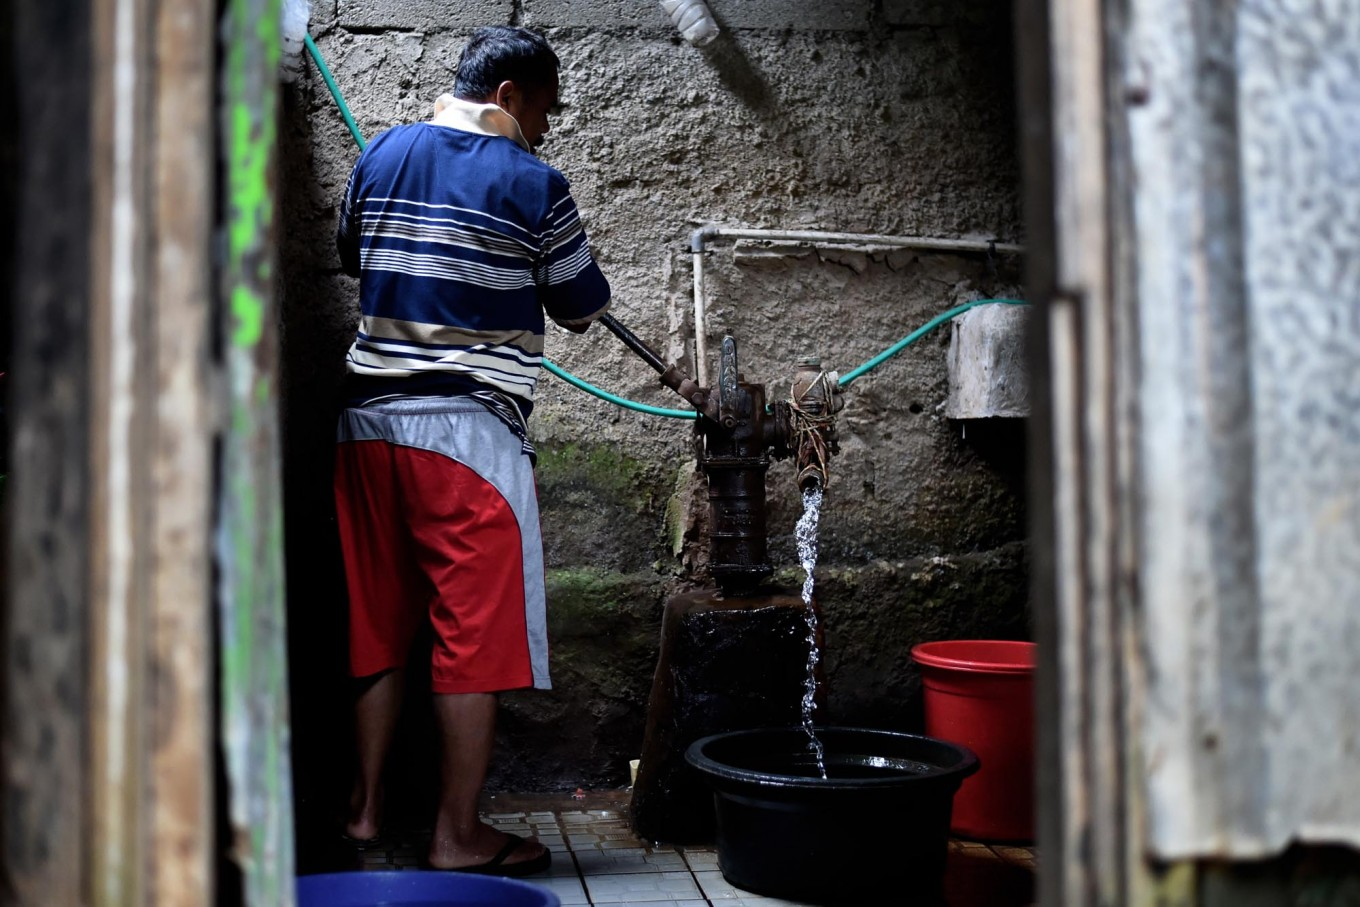 Court rules to end water privatization: What next?